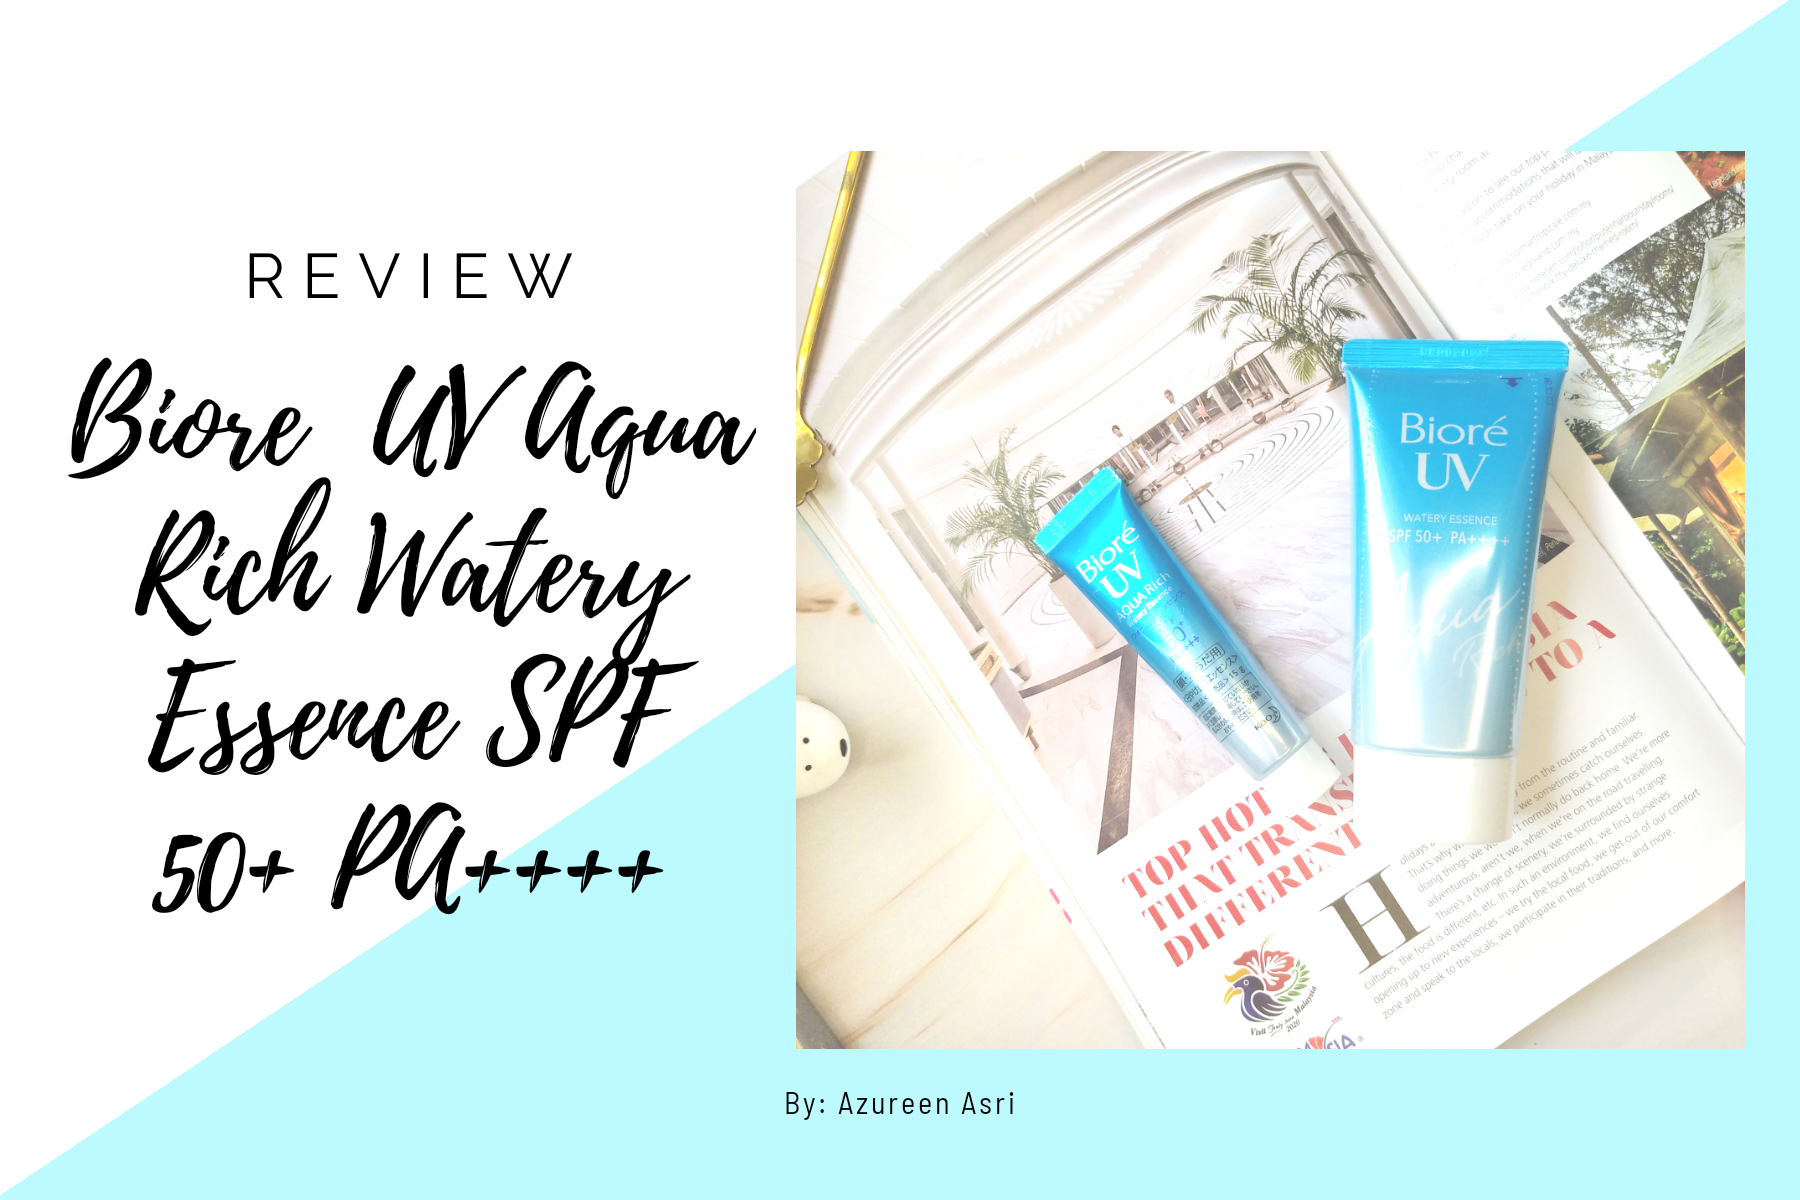 REVIEW | Biore UV Aqua Rich Watery Essence SPF 50+ PA++++